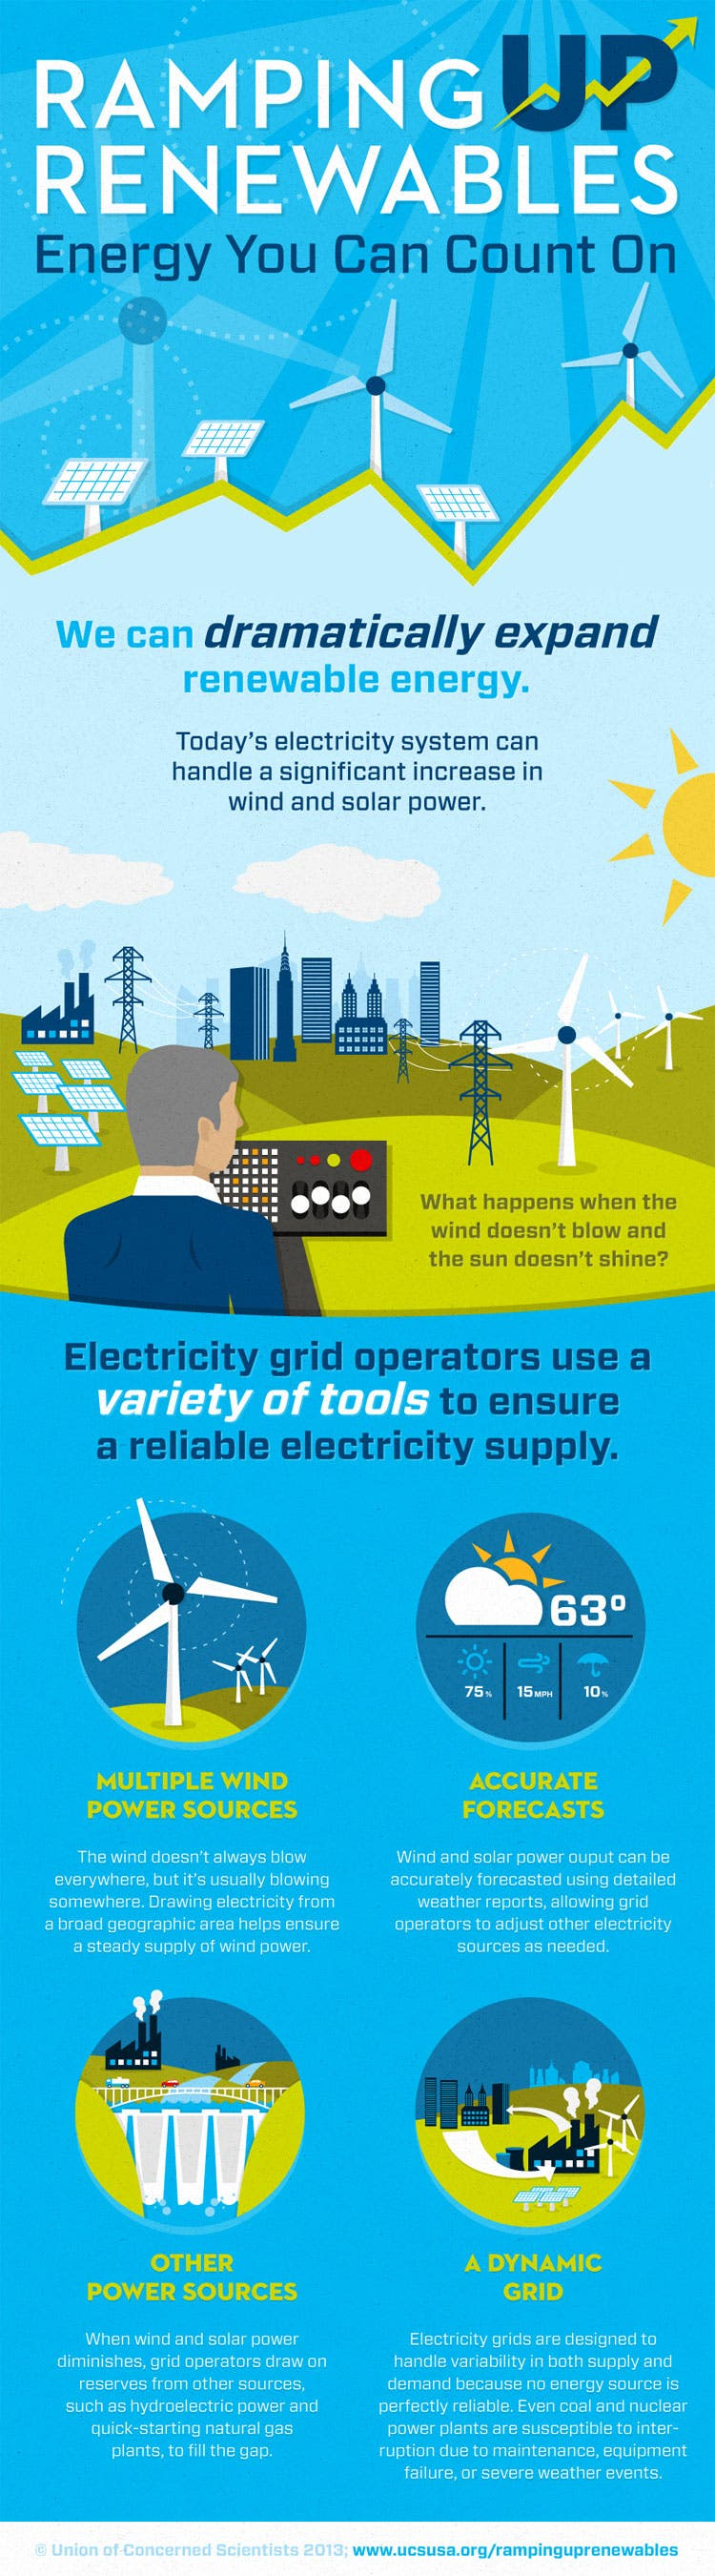 Ramping-Up-Renewables-Infographic_FINAL_Full-Size-Panel-2-Web-Version